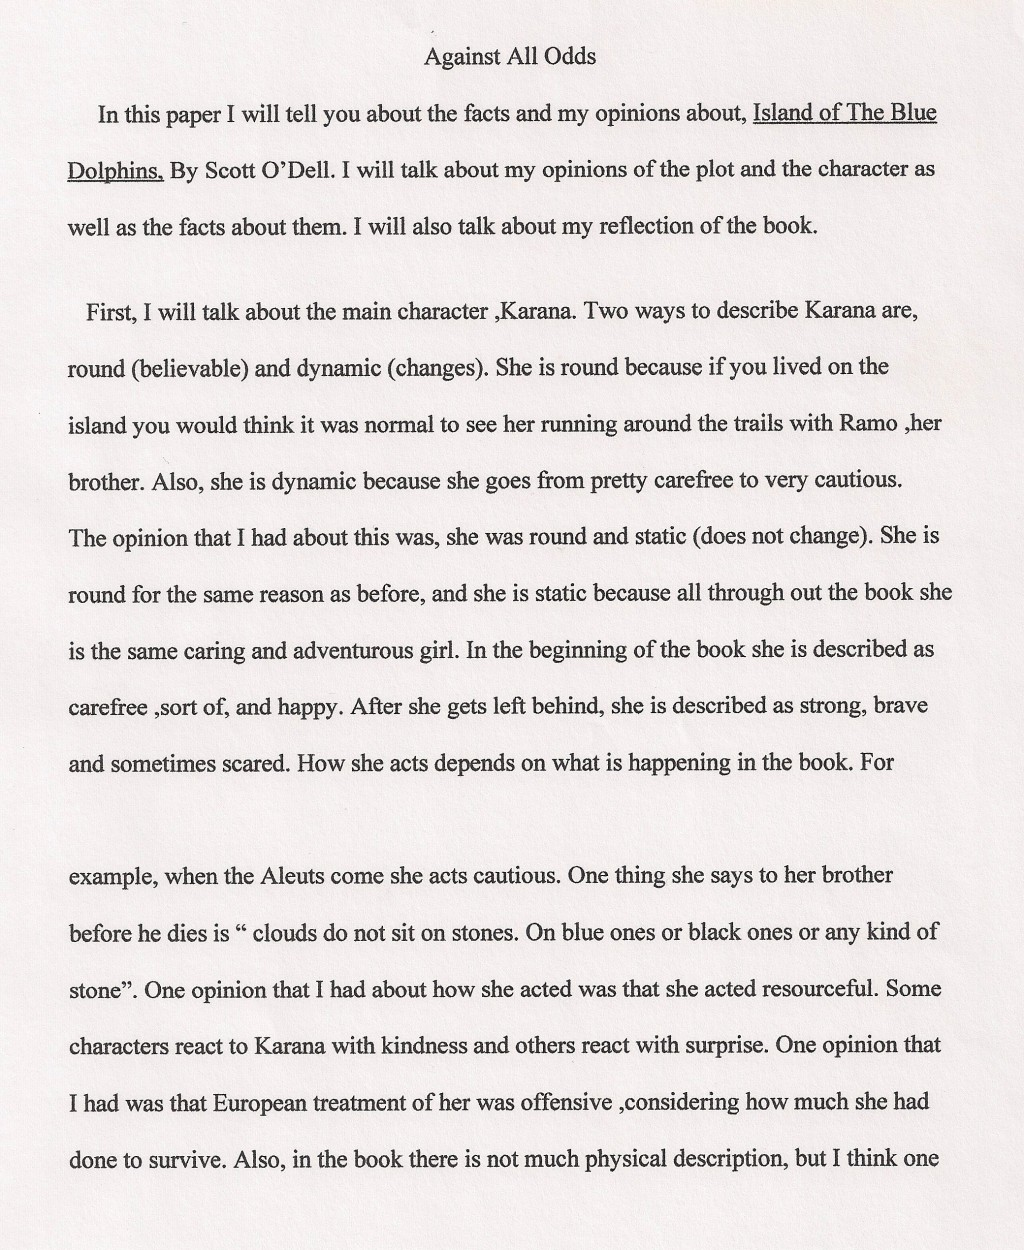 011 Persuasive Essay Writing For 5th Grade Example Week Against All Odds Merifully Samples L Impressive Essays Written By Fifth Graders A Prompts Large